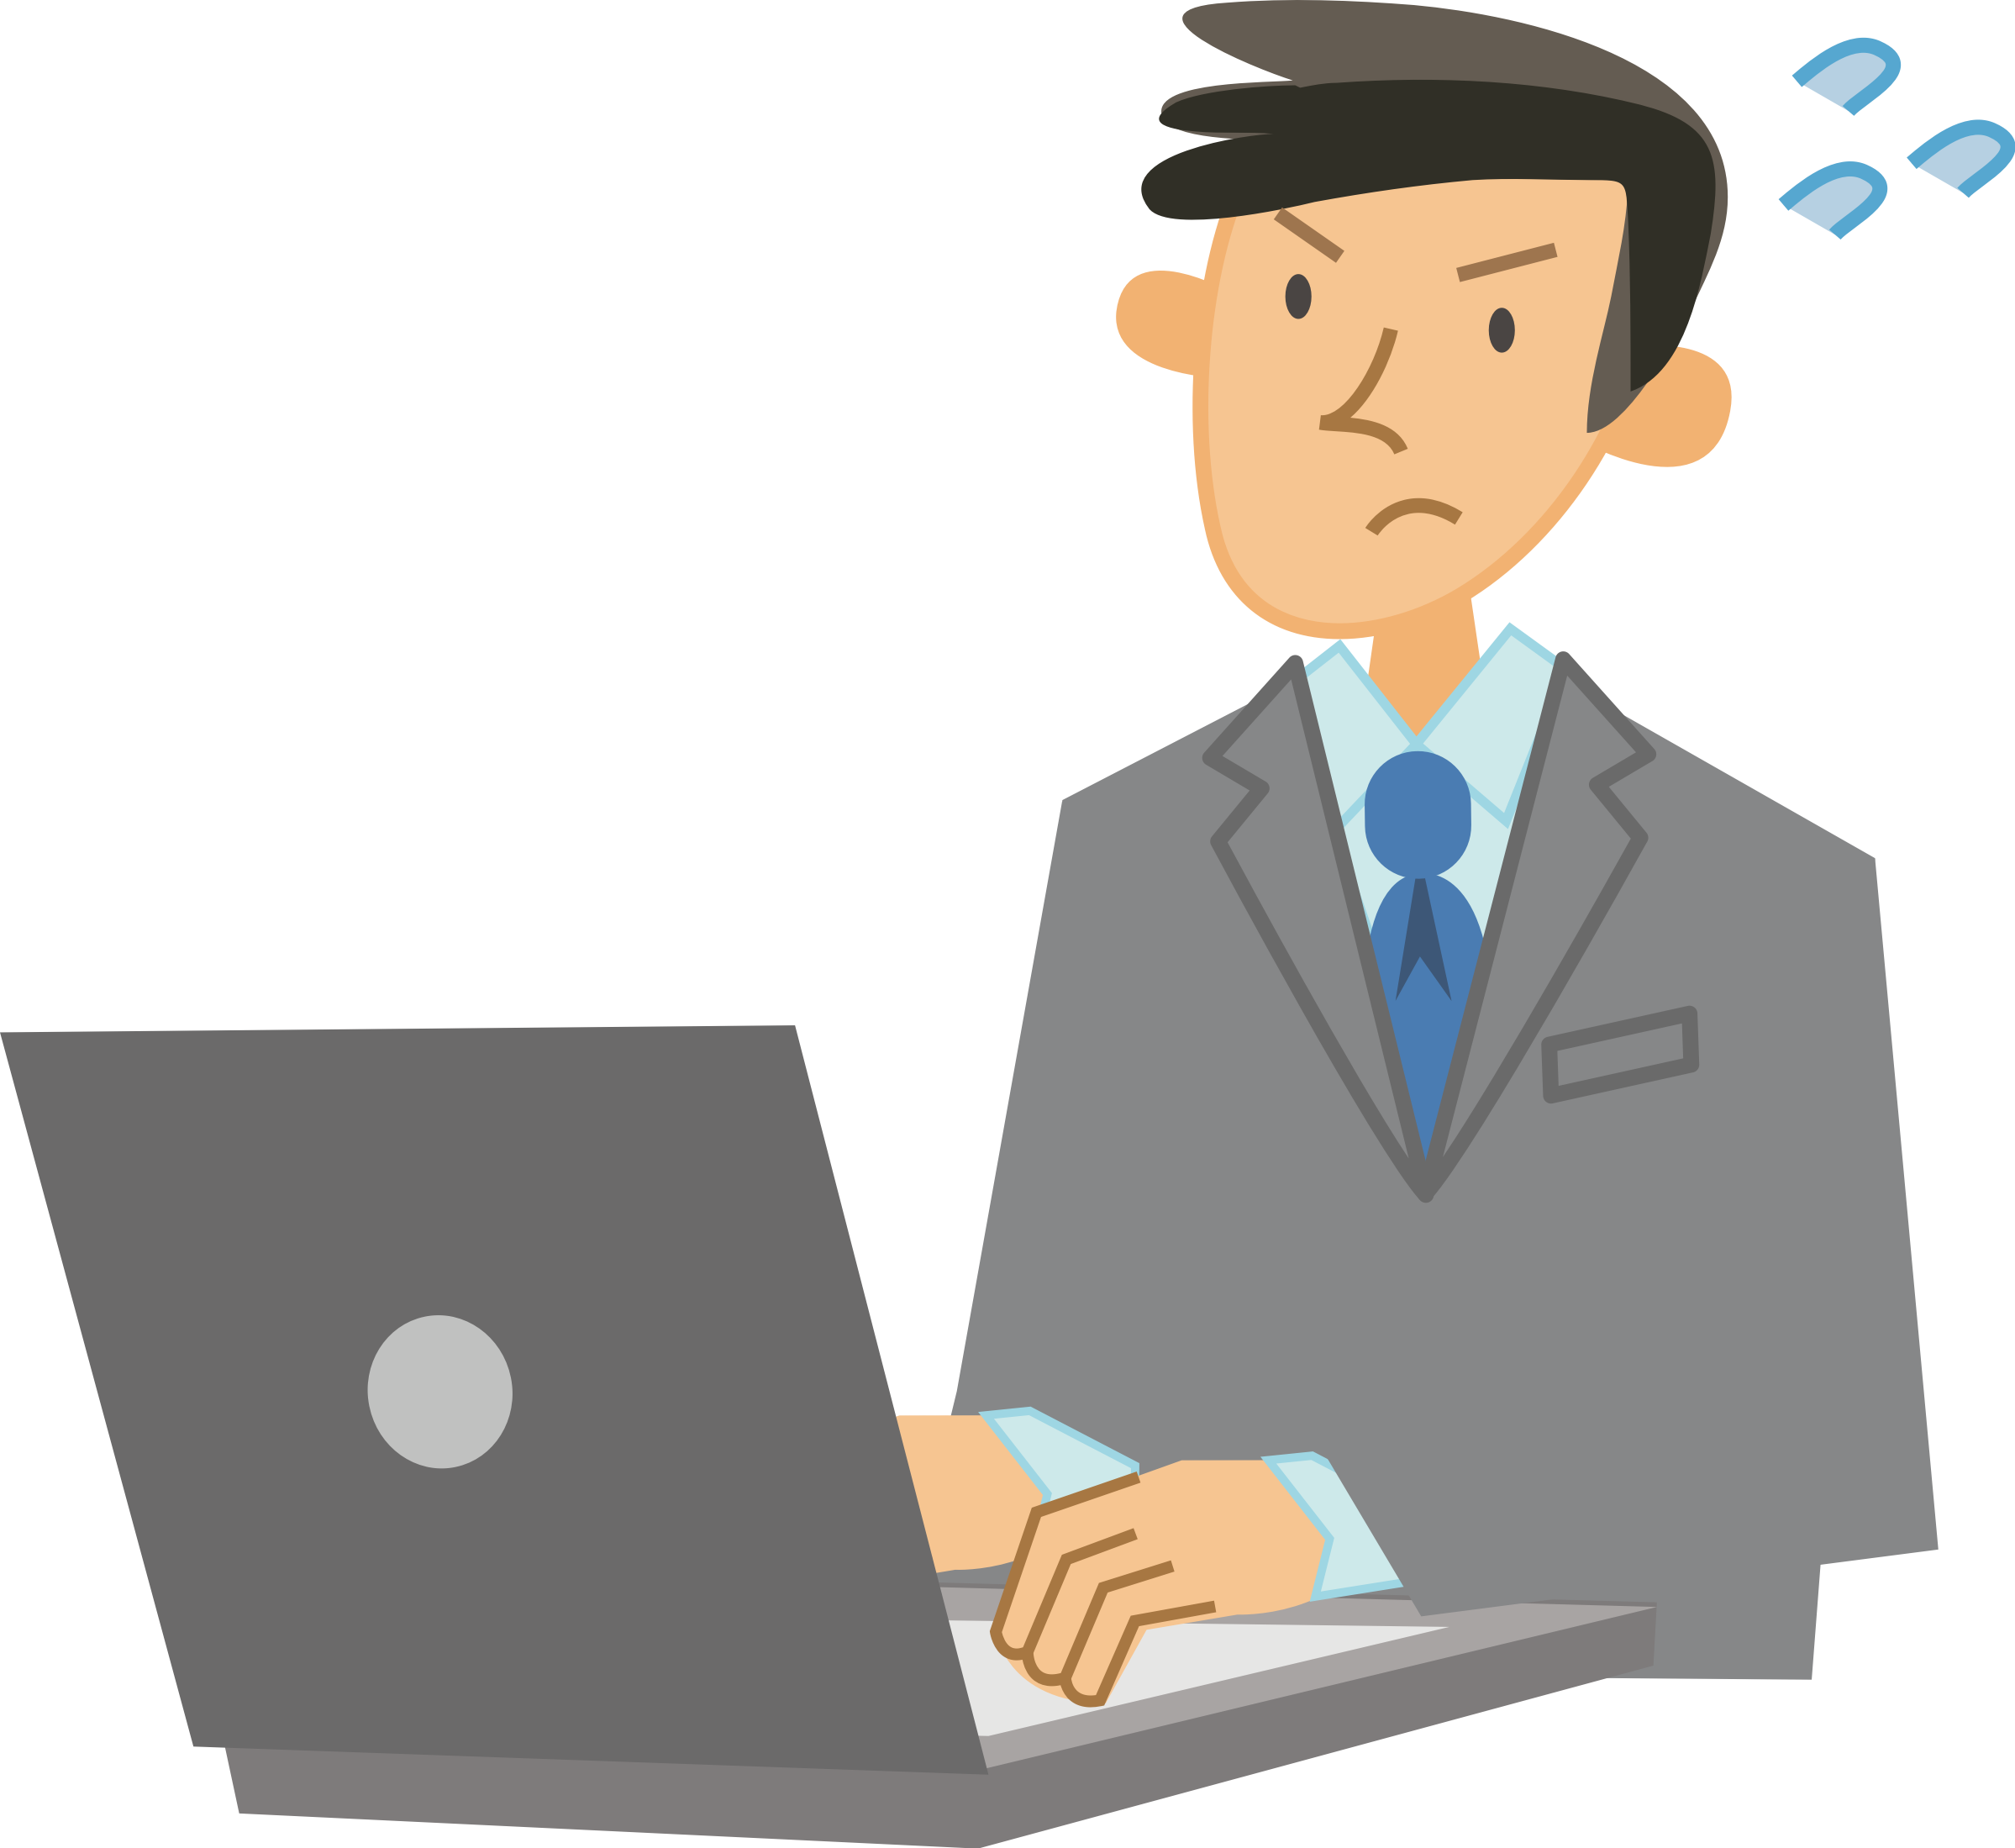 Guy clipart computer user. Male big image png